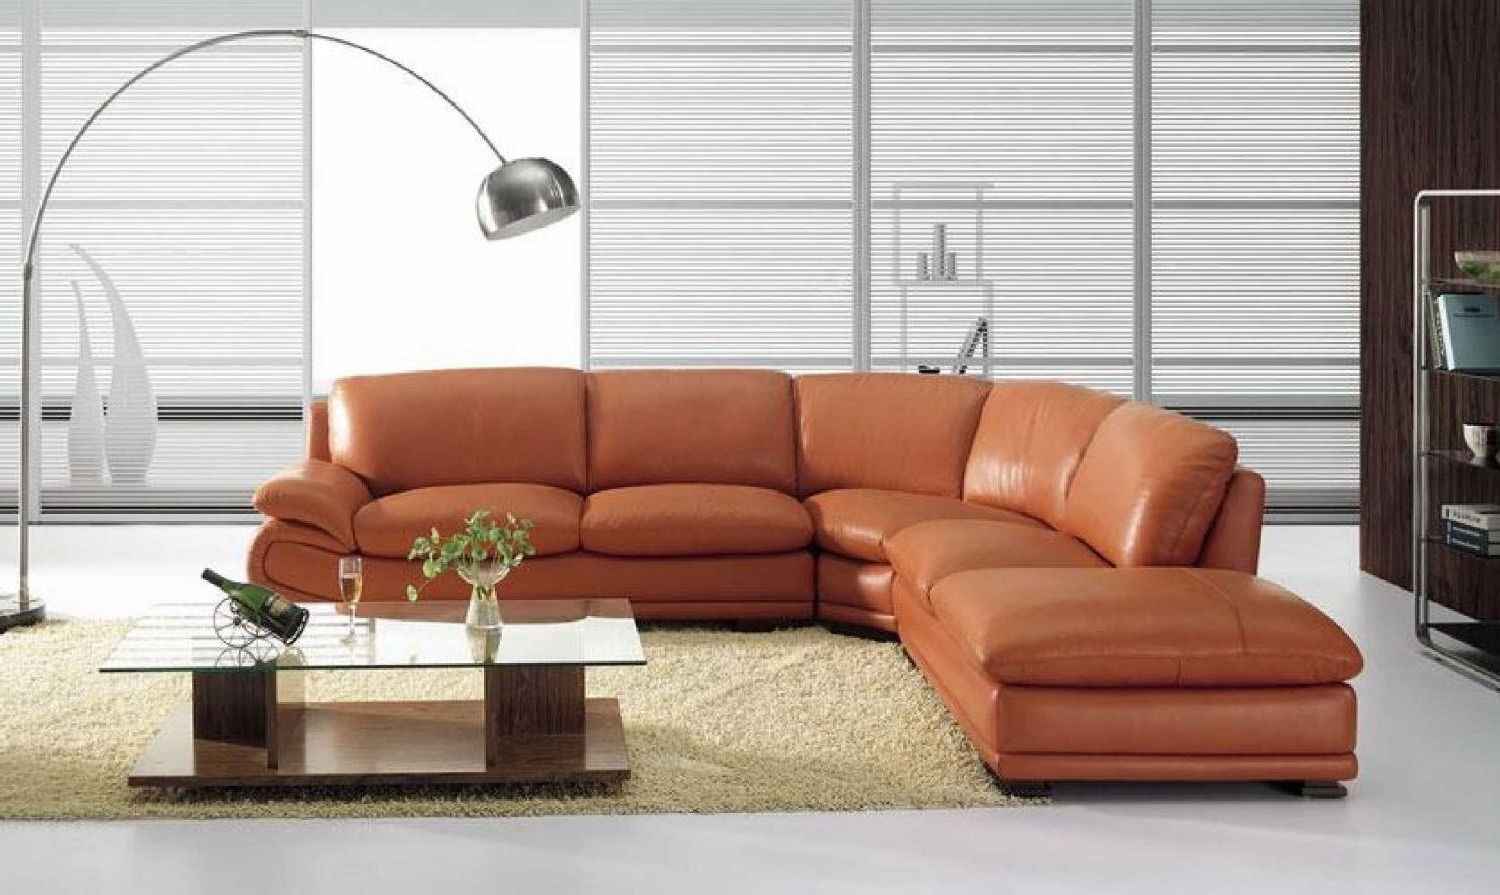 Vig Furniture Bo 3920 Leather Modern Camel Sectional Sofa Inside Most Popular Camel Sectional Sofas (View 14 of 15)